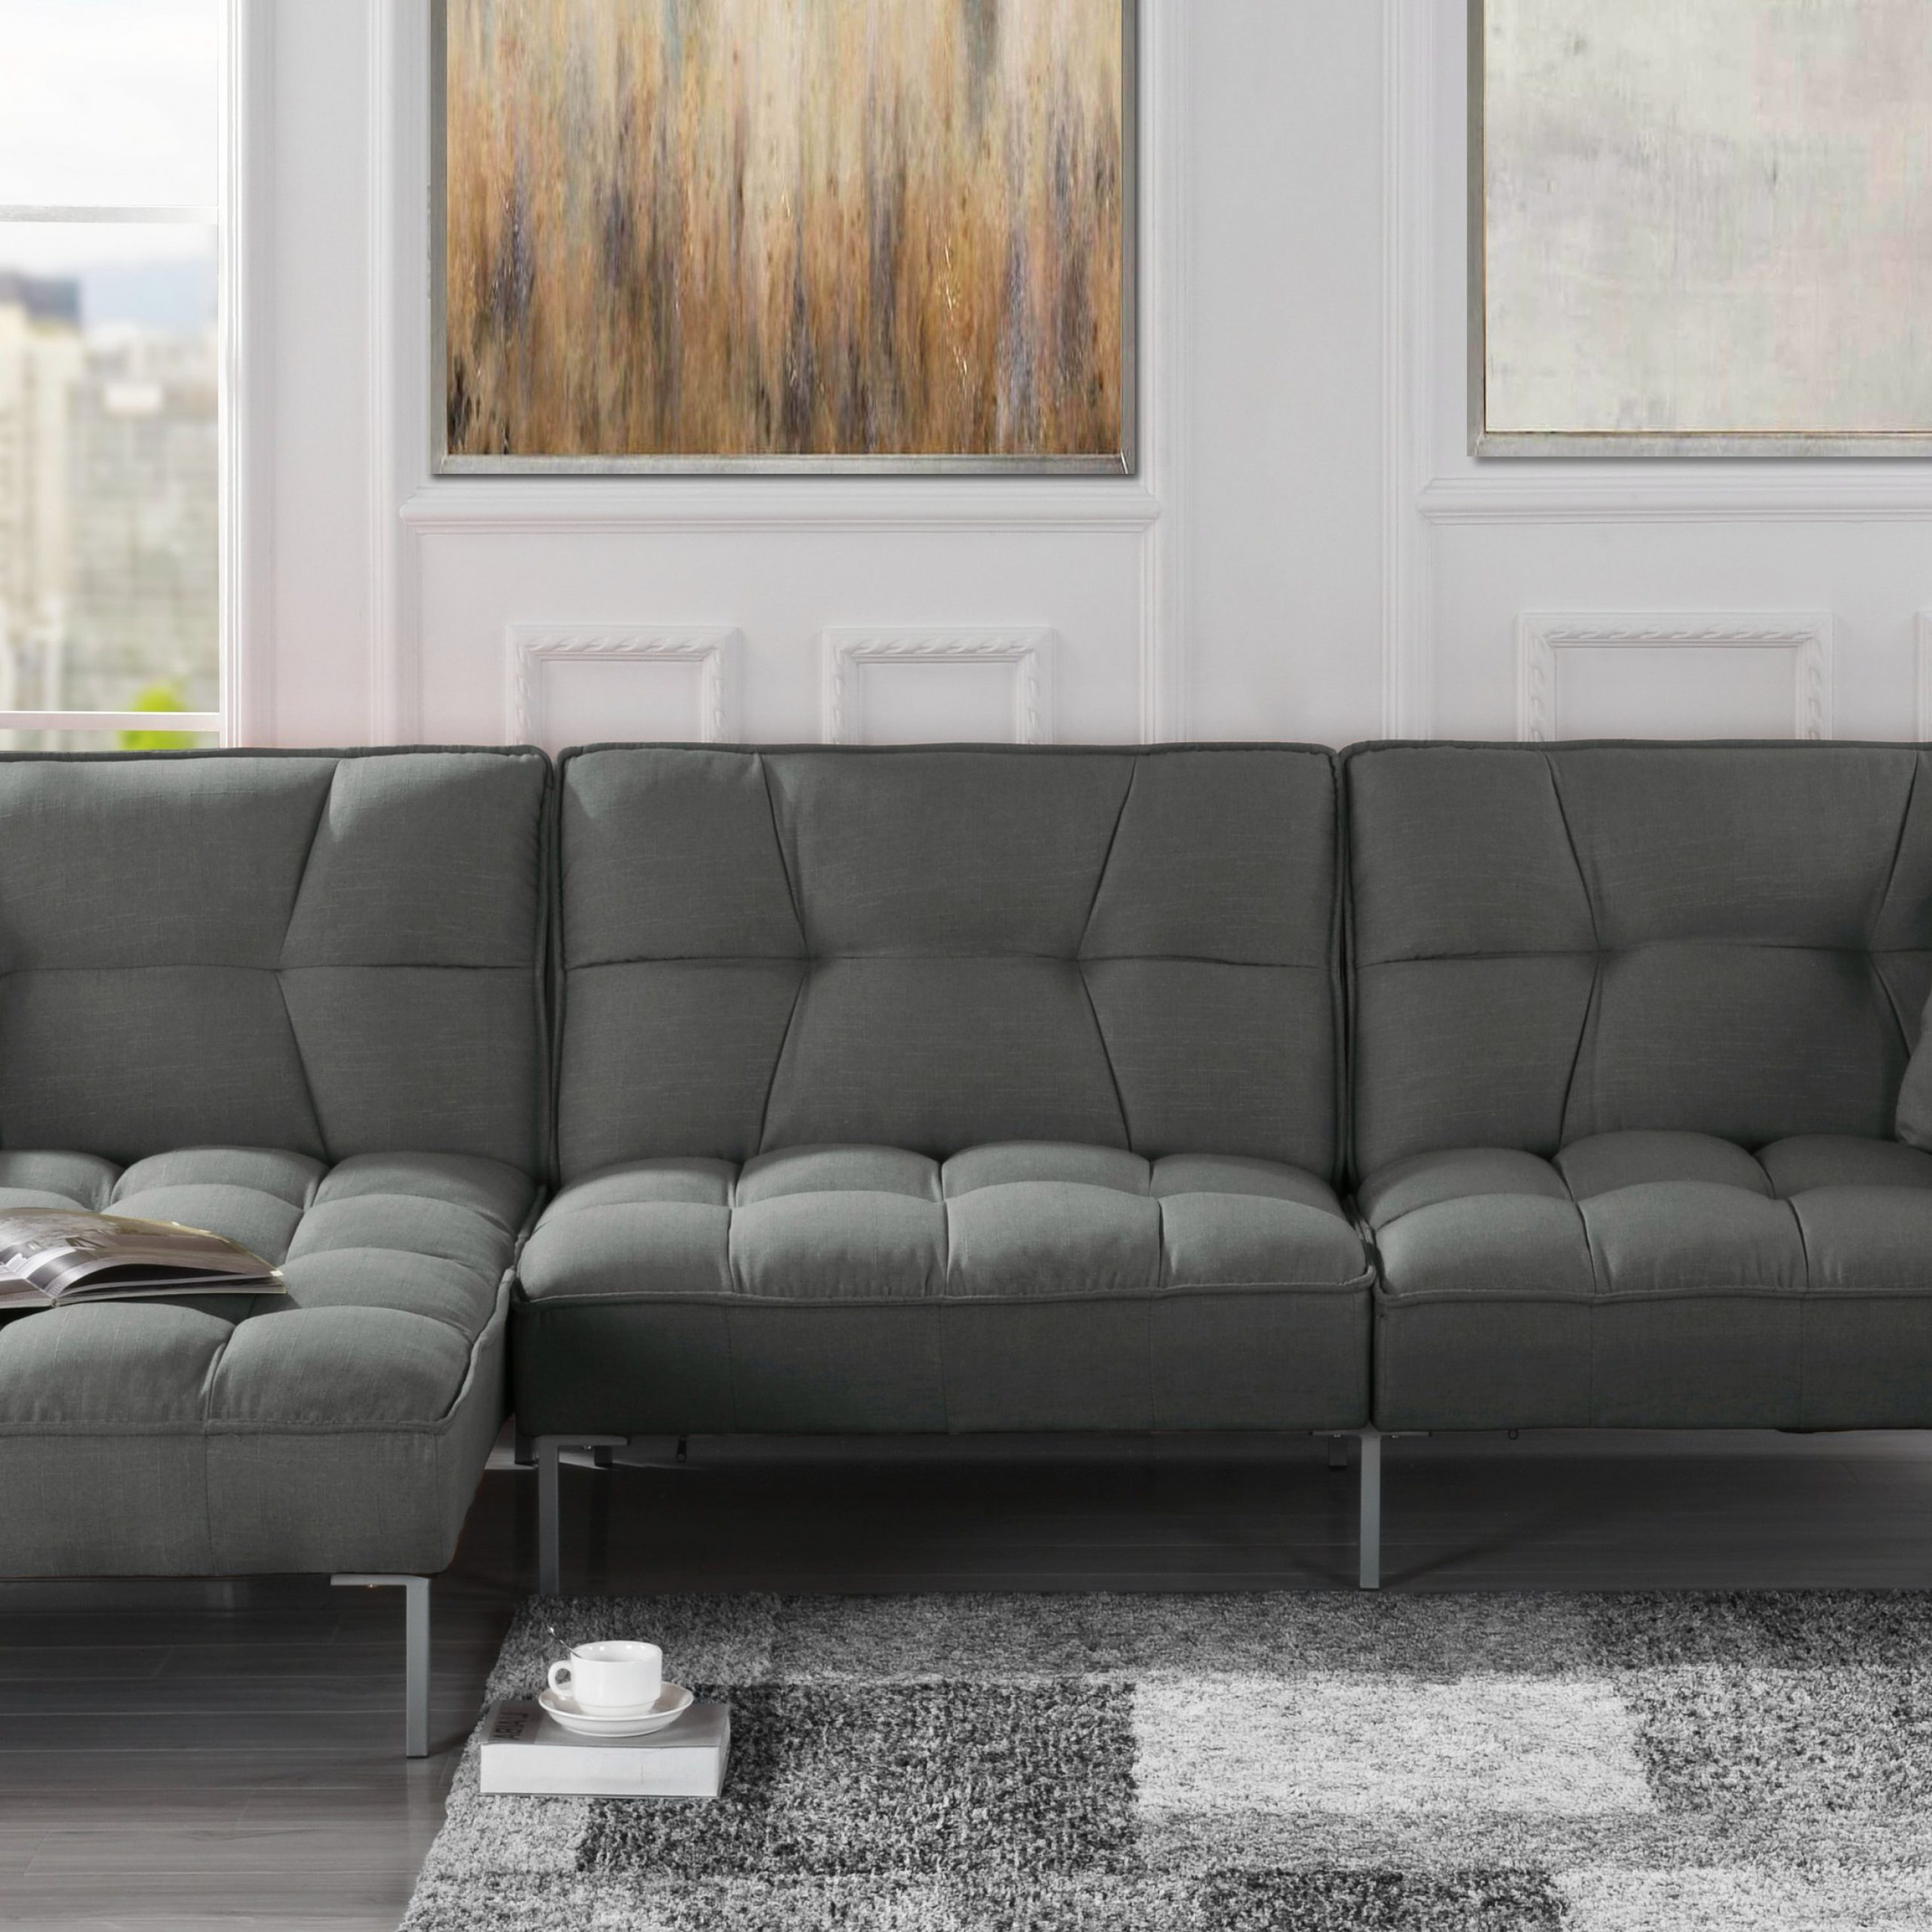 Mobilis Modern Square Tufted Linen Fabric Sectional Sofa Pertaining To Preferred Polyfiber Linen Fabric Sectional Sofas Dark Gray (View 2 of 20)